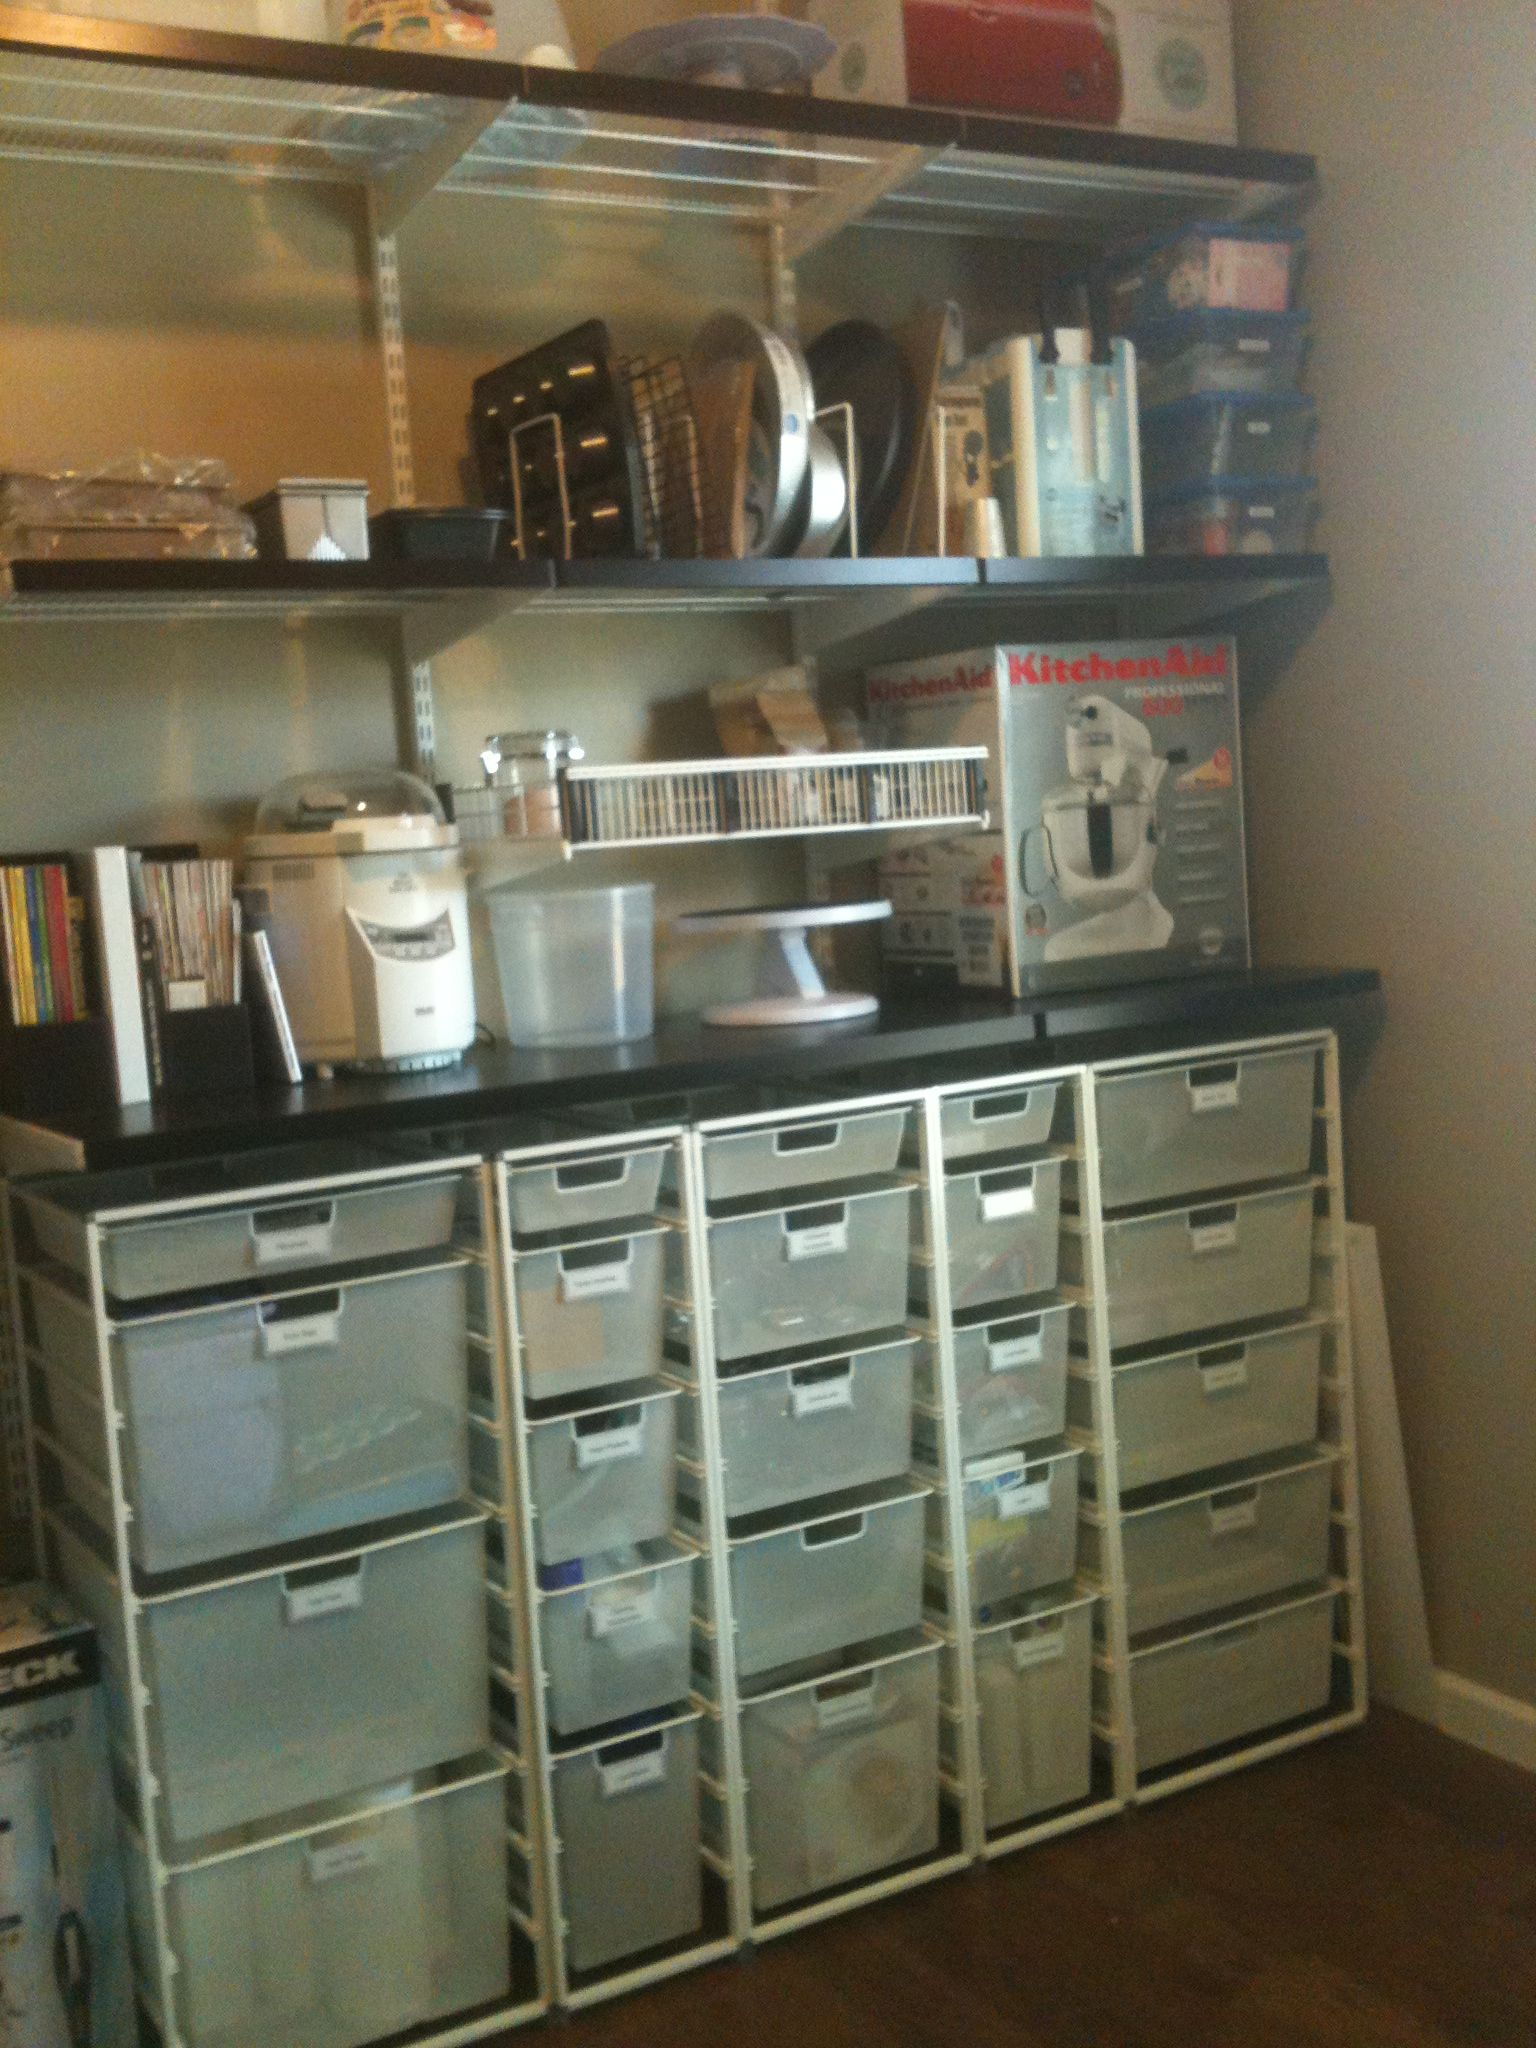 Using Container Store elfa system to organize baking supplies